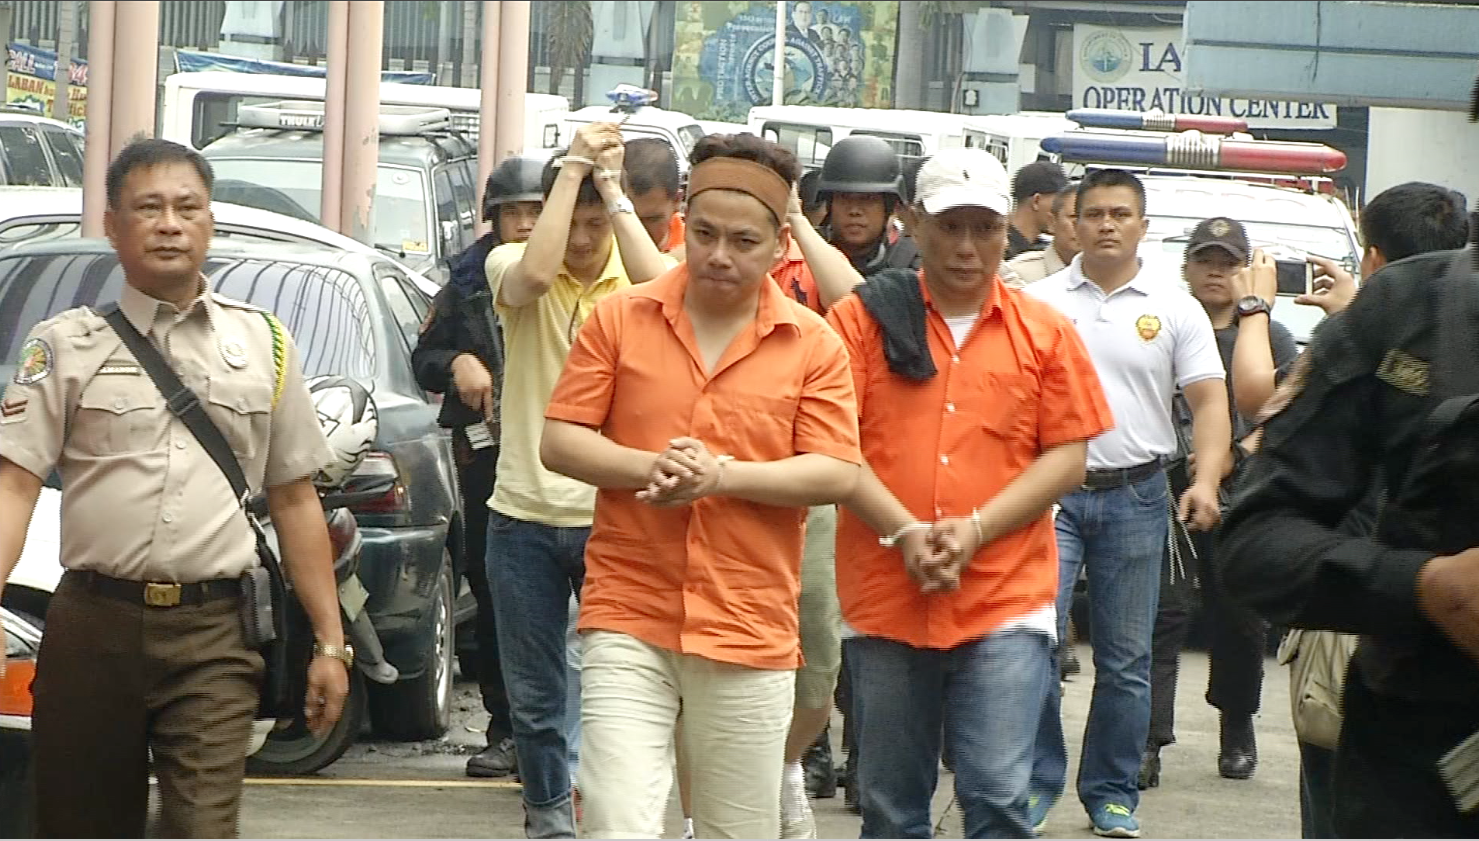 19 druglords brought to nbi after doj surprise inspection discovers